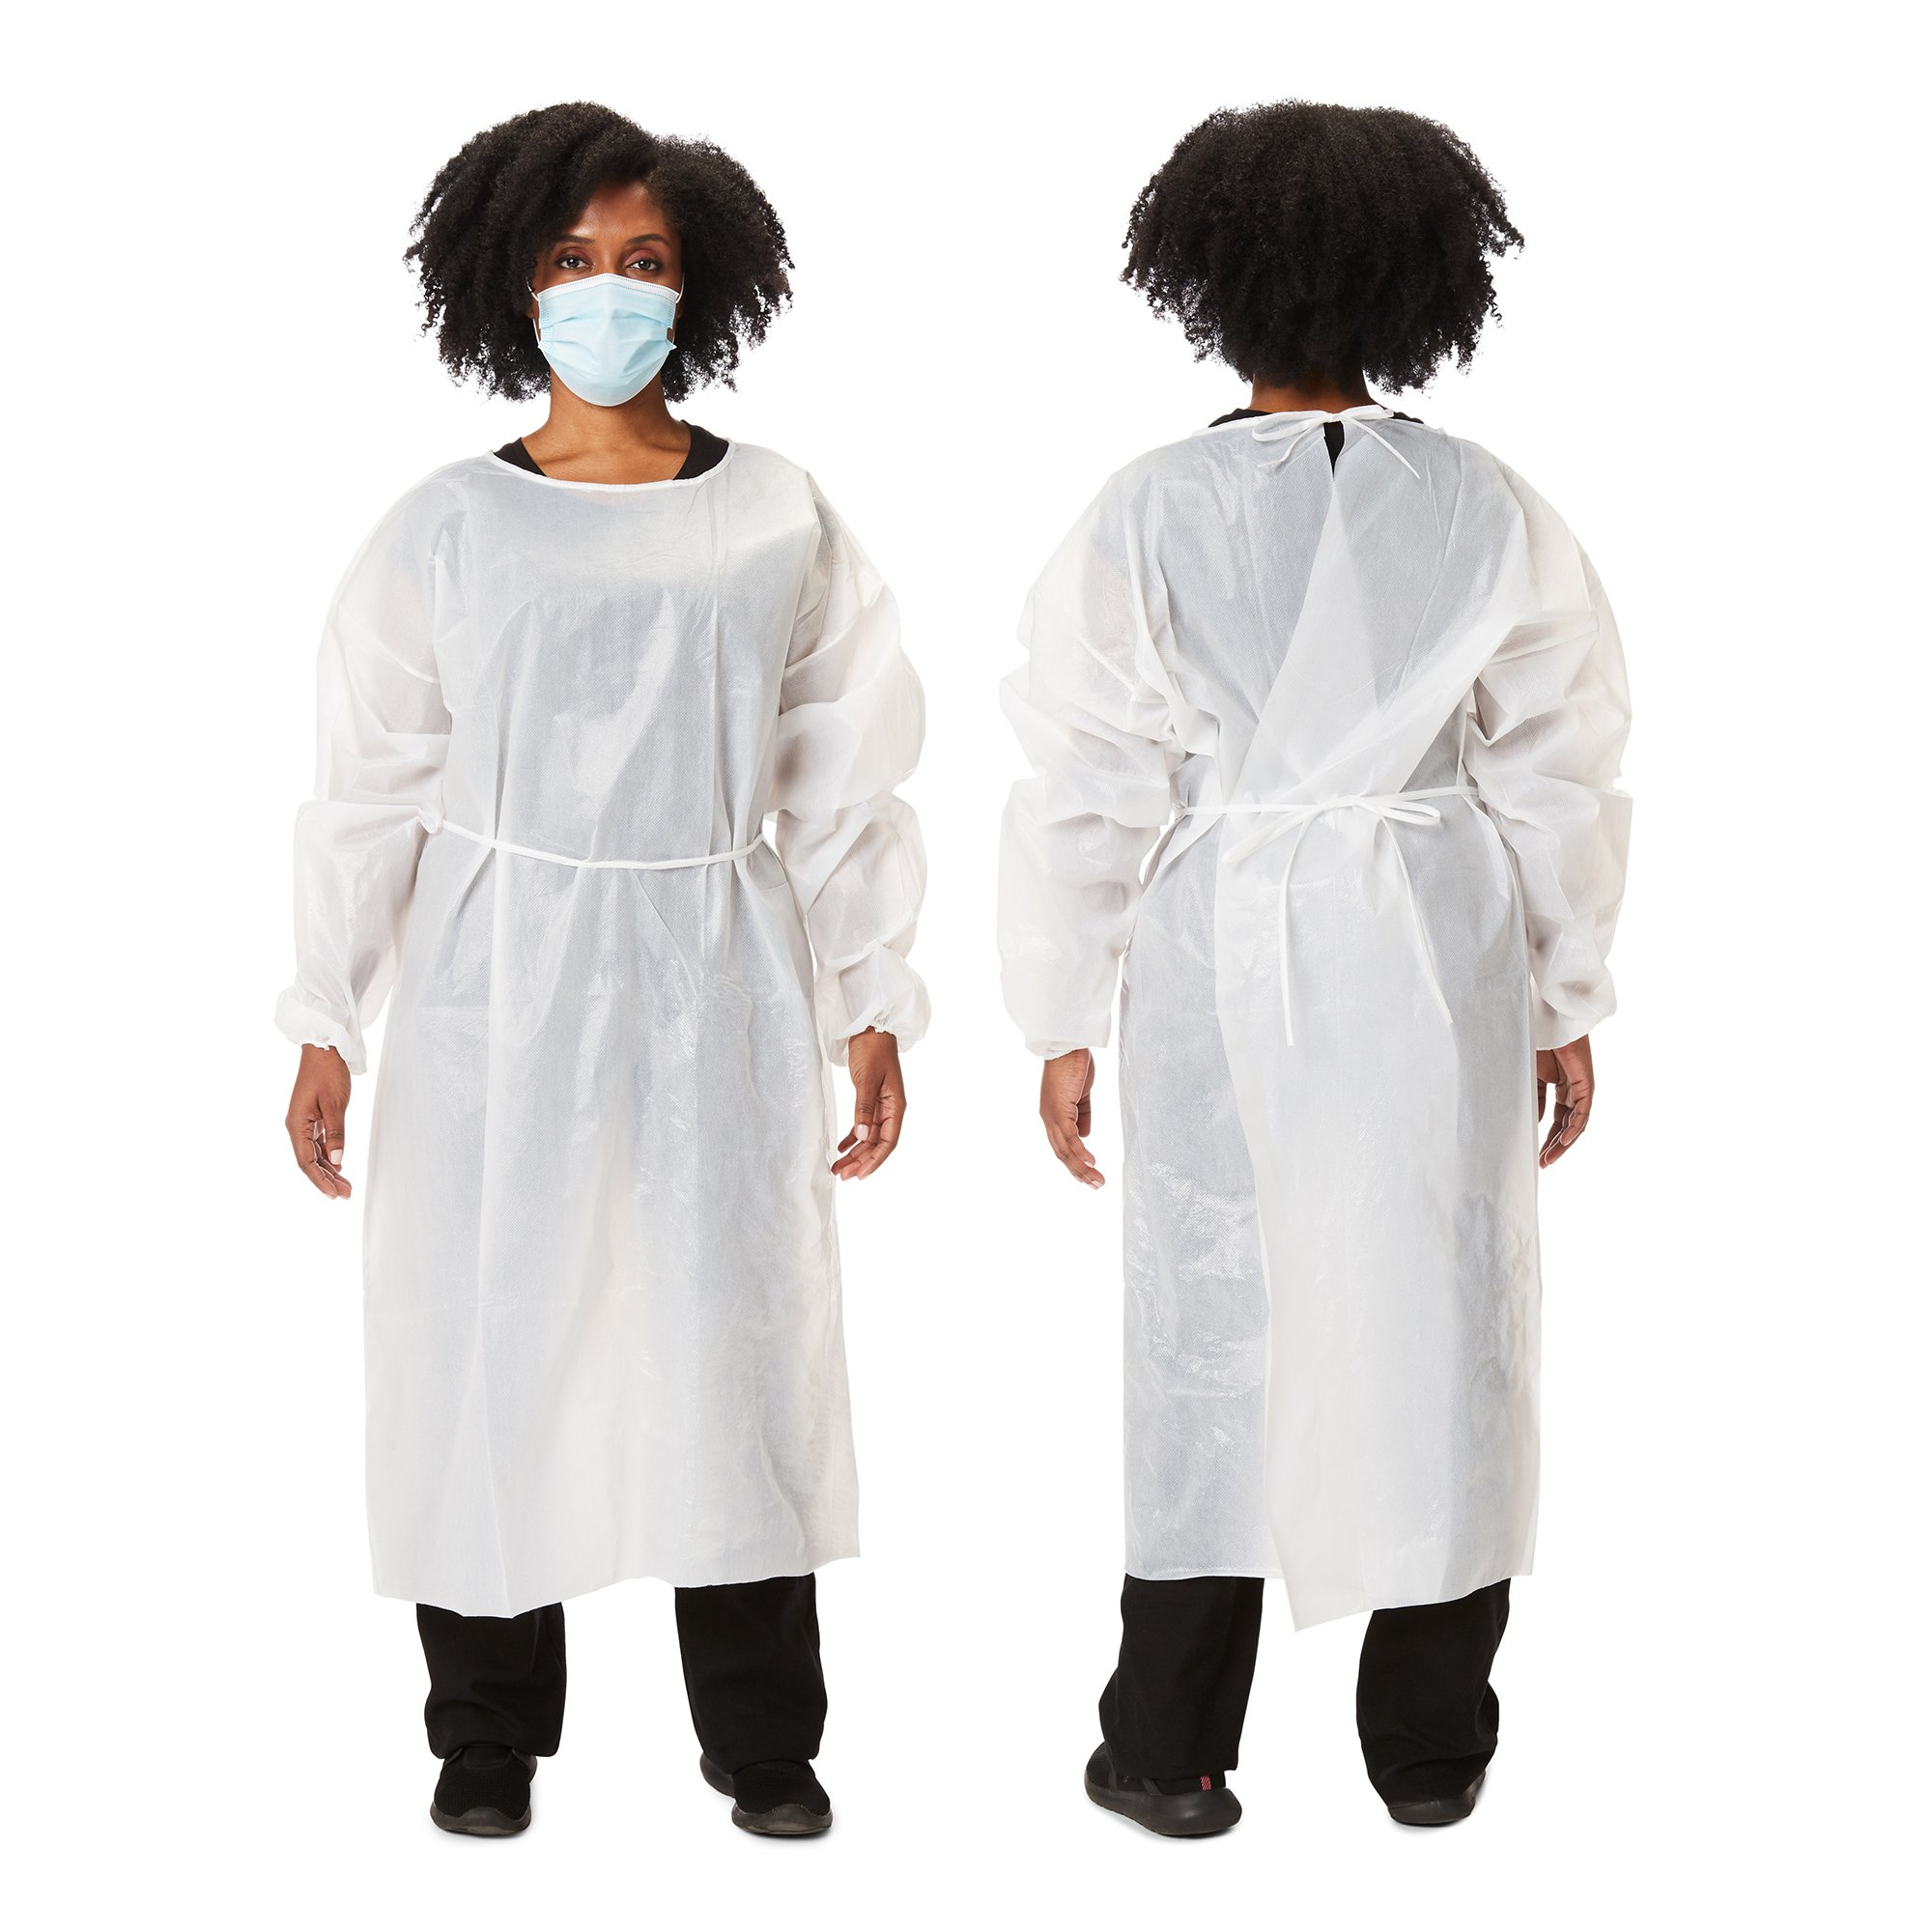 Picture of Protective Procedure Gown One Size Fits Most White NonSterile Disposable, 10 per Bag